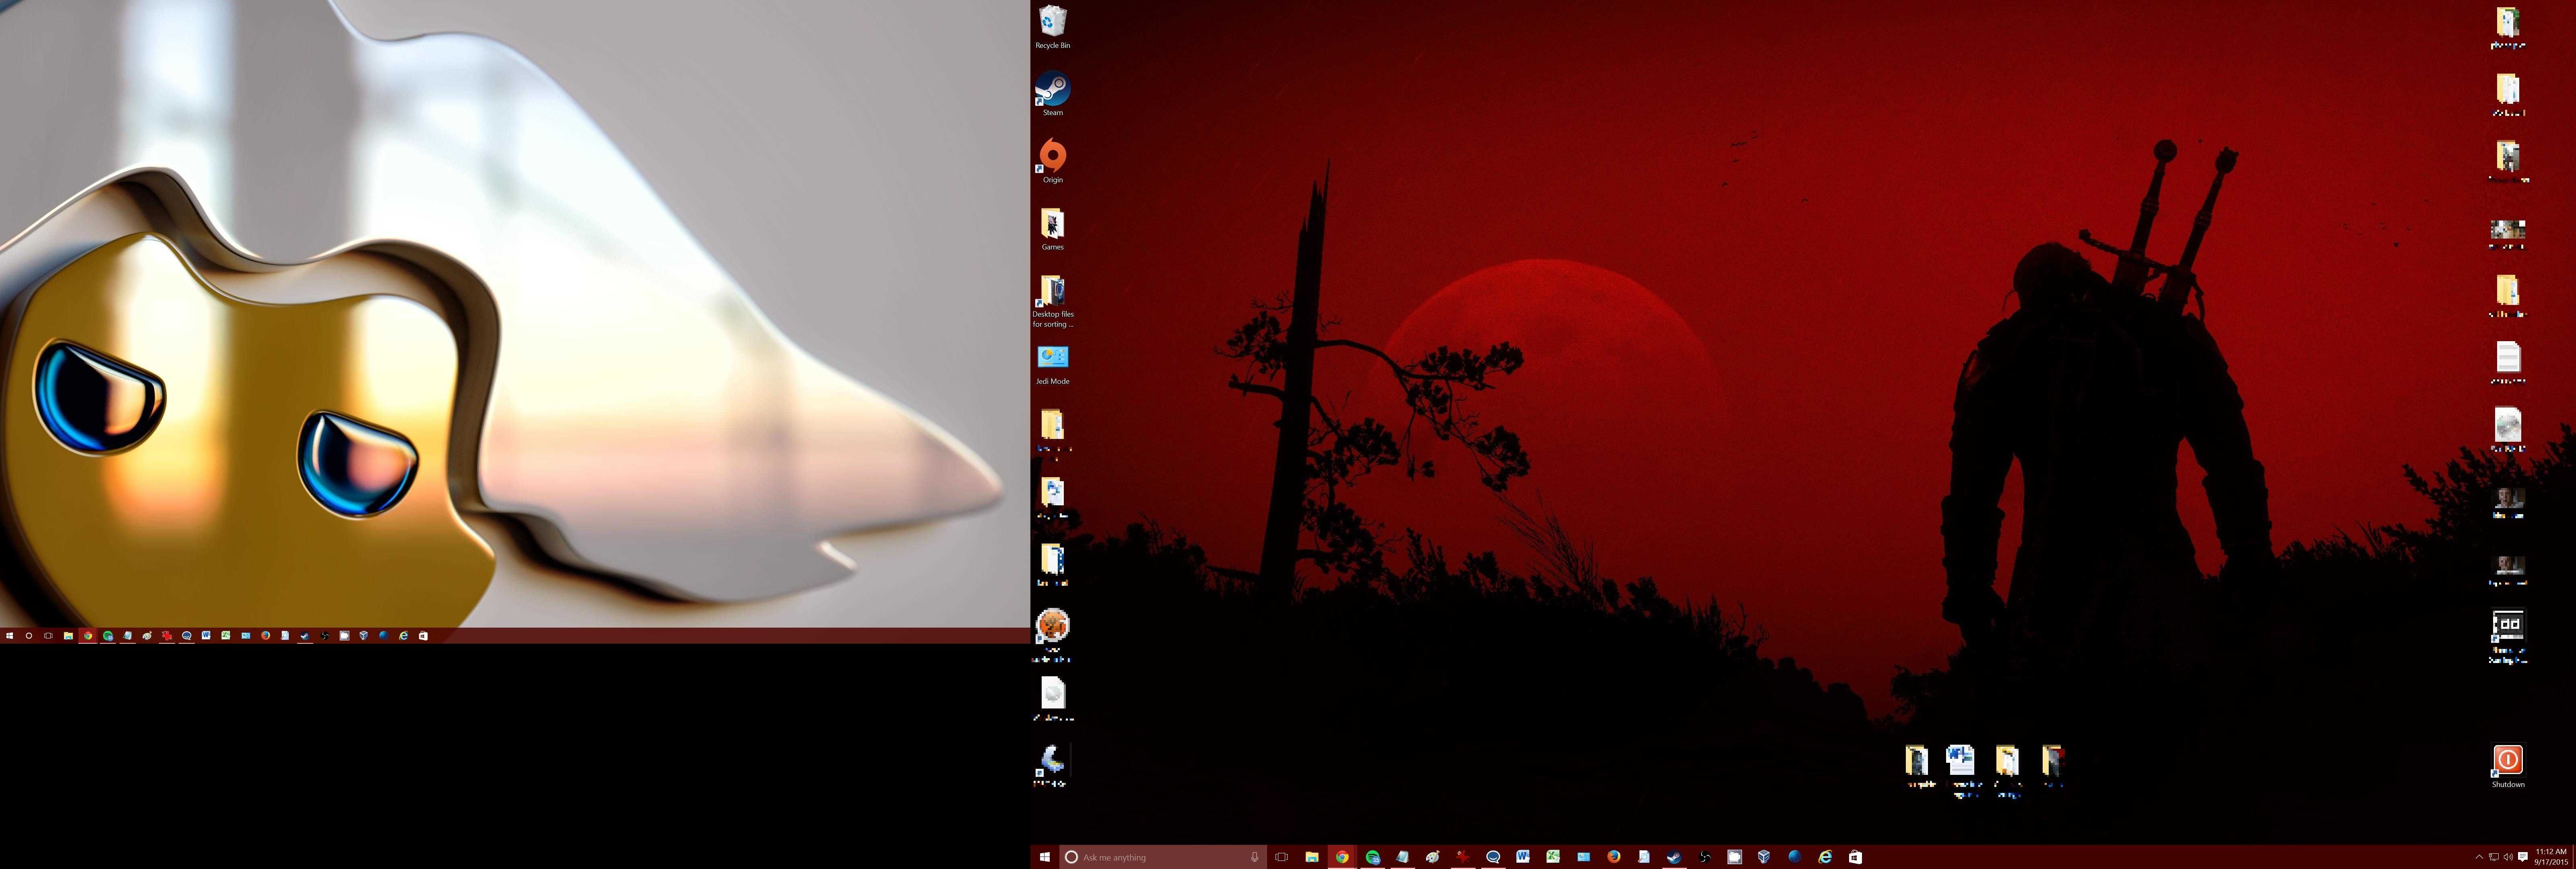 Dual Monitor Different Wallpaper Windows 10 Http Hdwallpaper Info Dual Monitor Different Wallpaper Win Dual Screen Wallpaper Wallpaper Wallpaper Windows 10